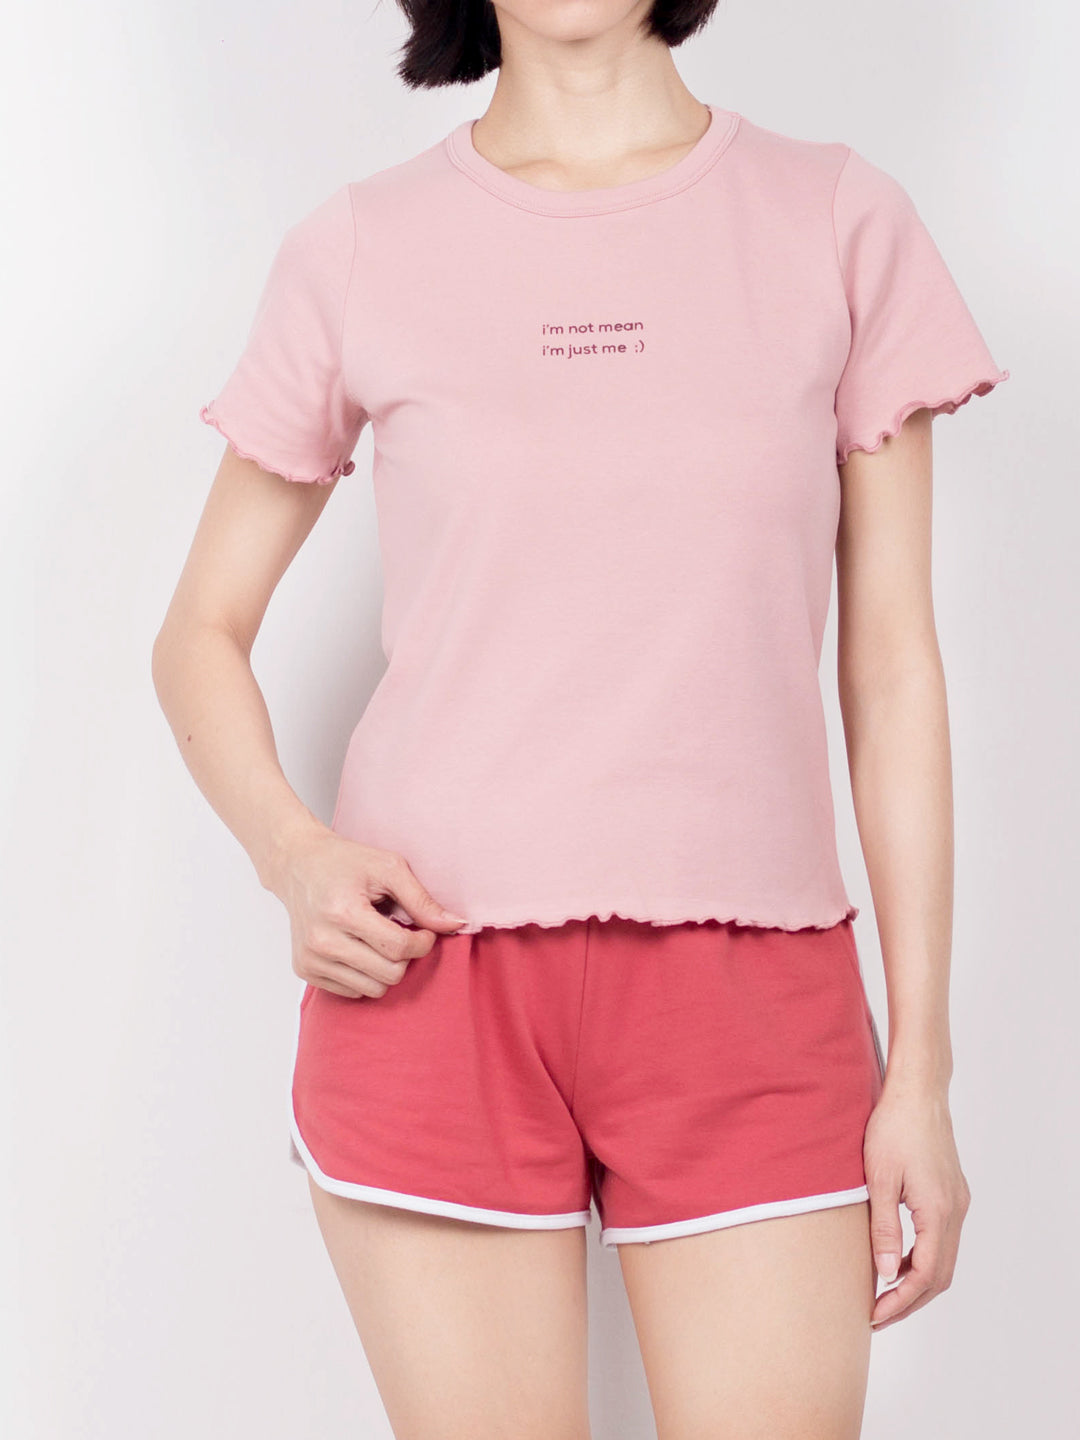 Women Short Sleeve Ribbed Blouse  - Dark Pink